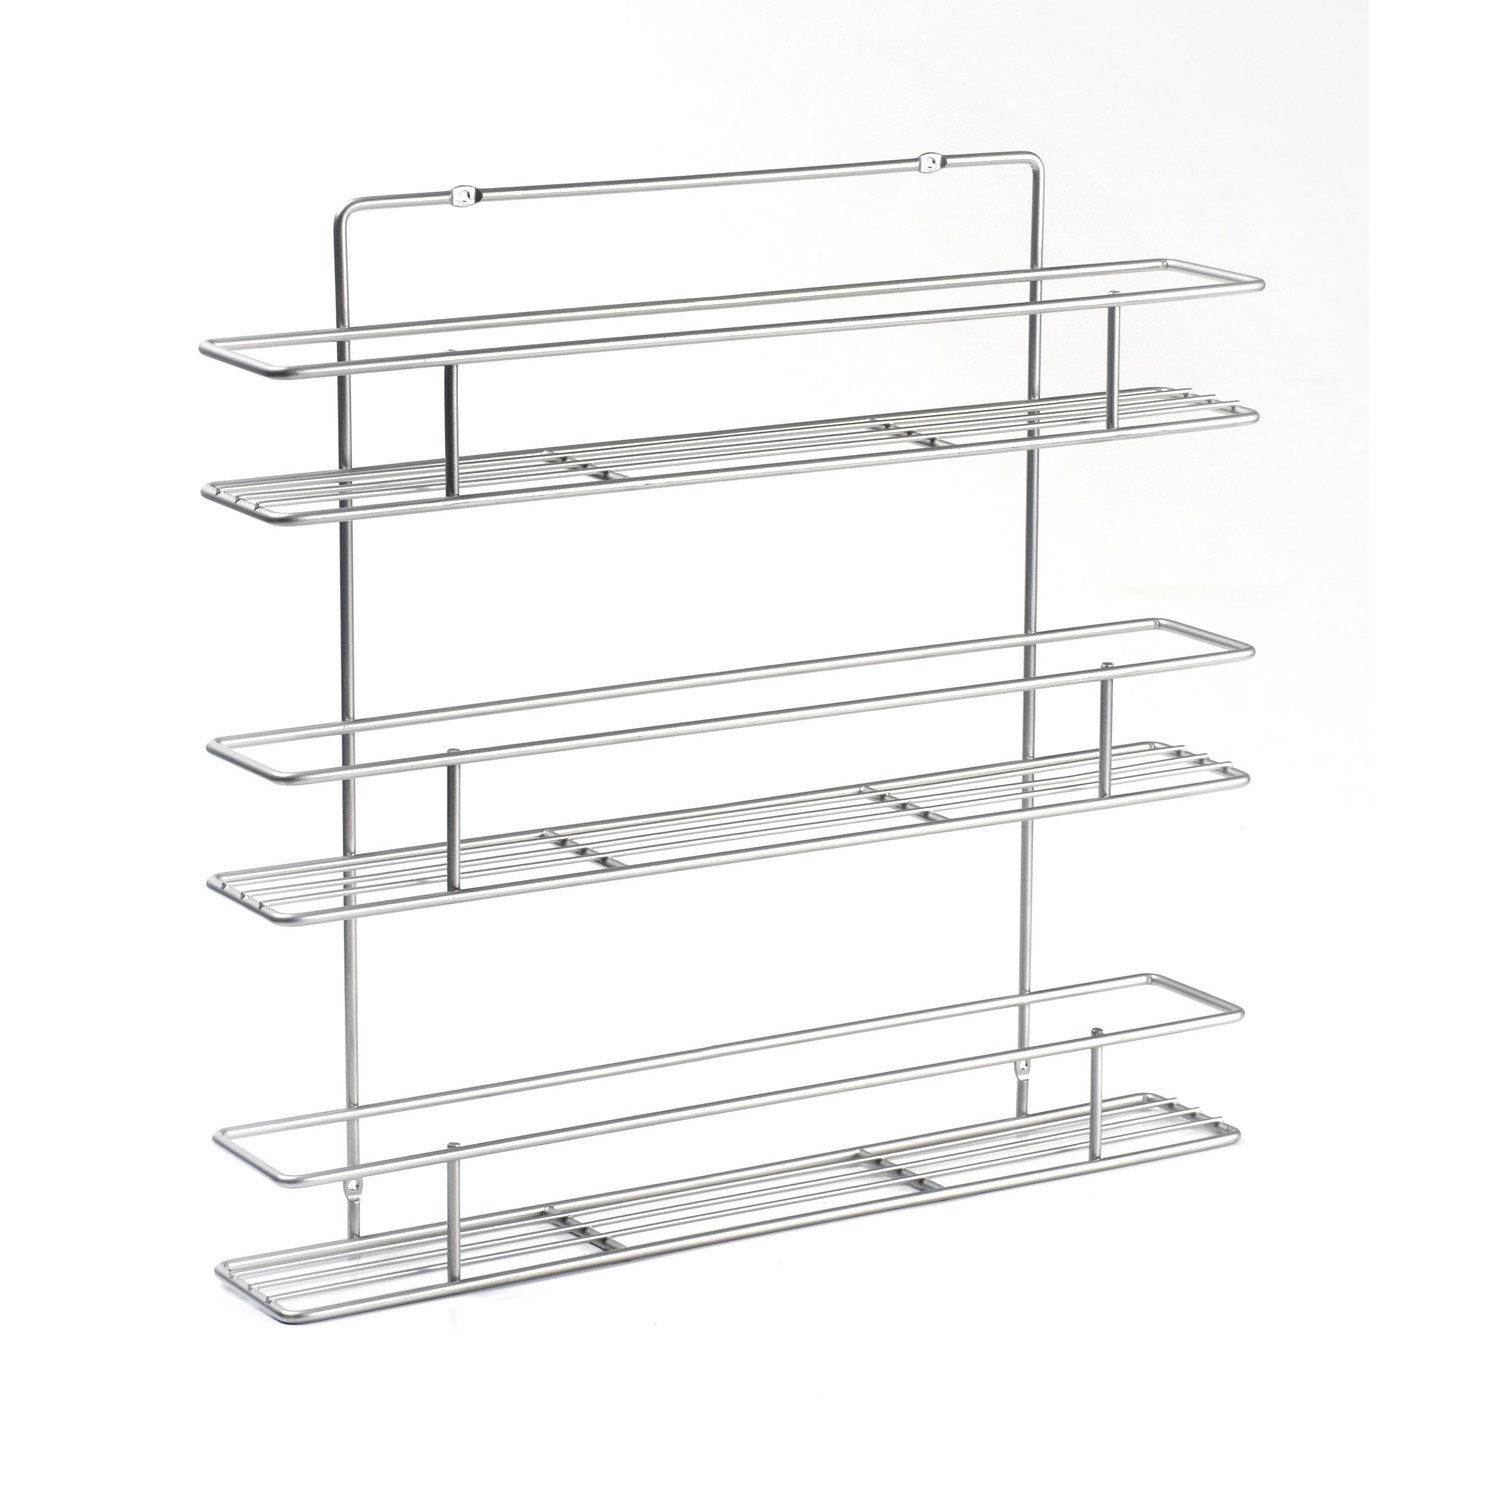 Etag re m tal epoxy leroy merlin - Etagere metal leroy merlin ...